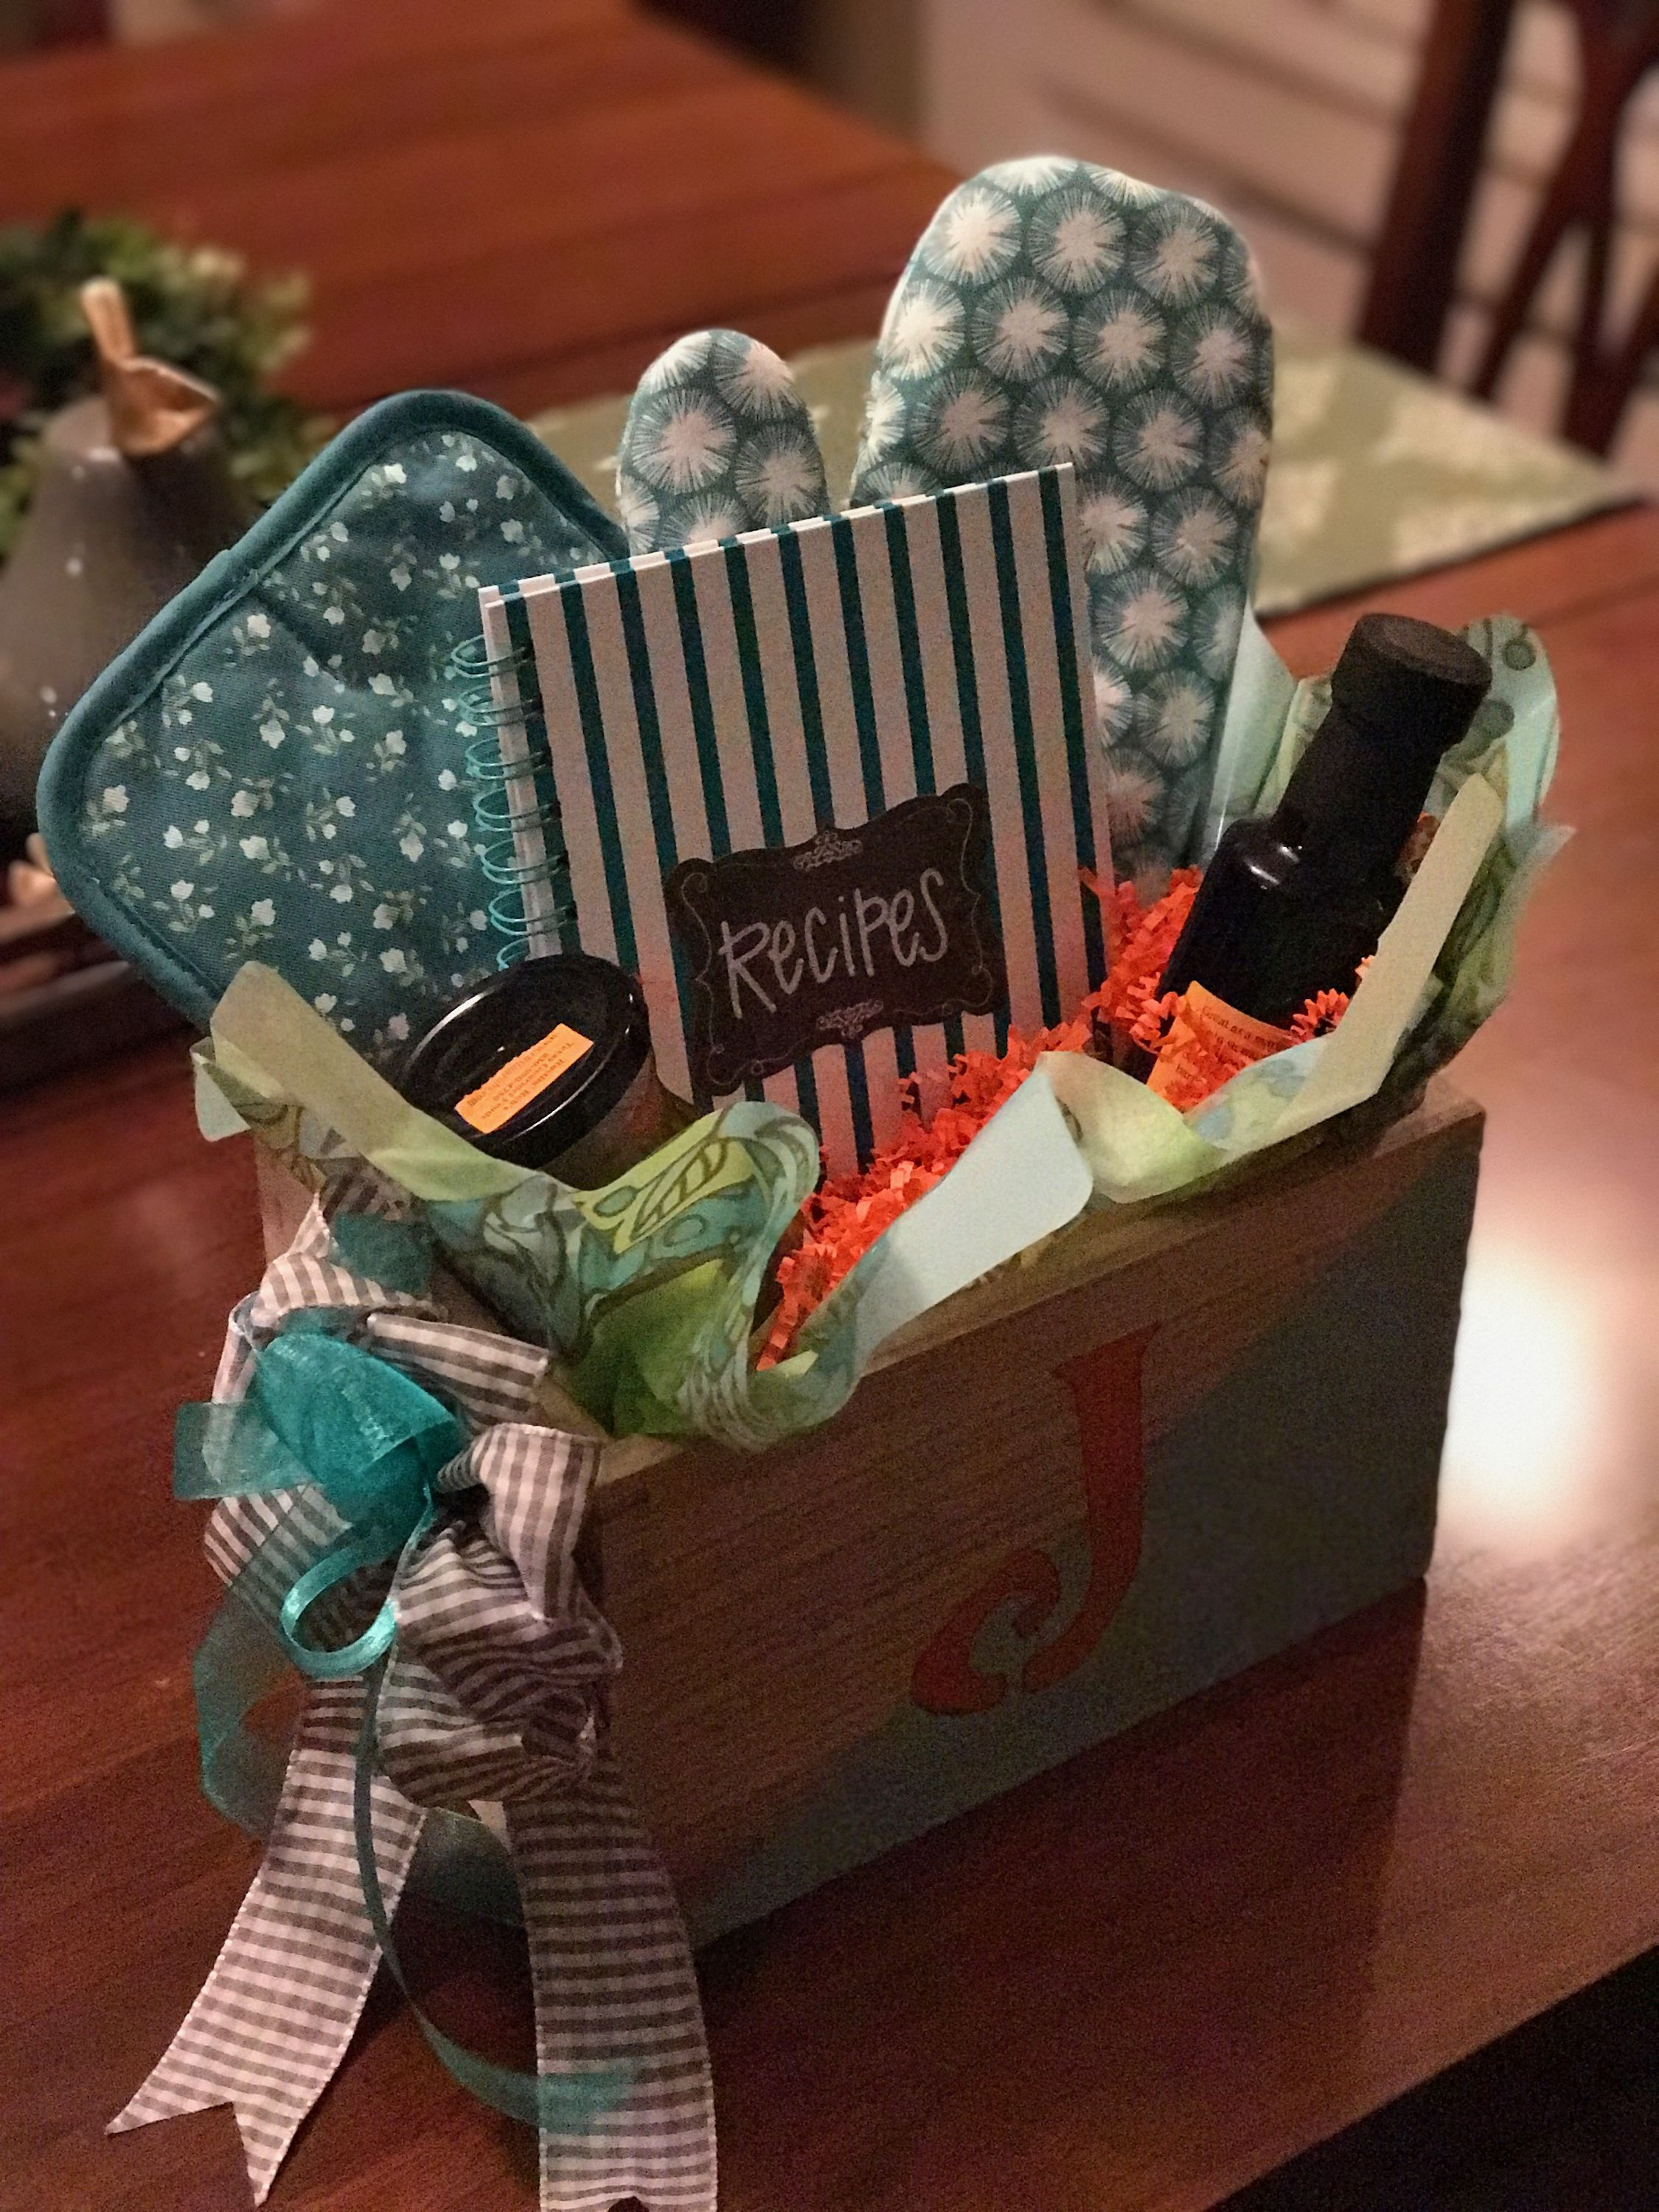 Cooking Themed Gift Basket Ideas